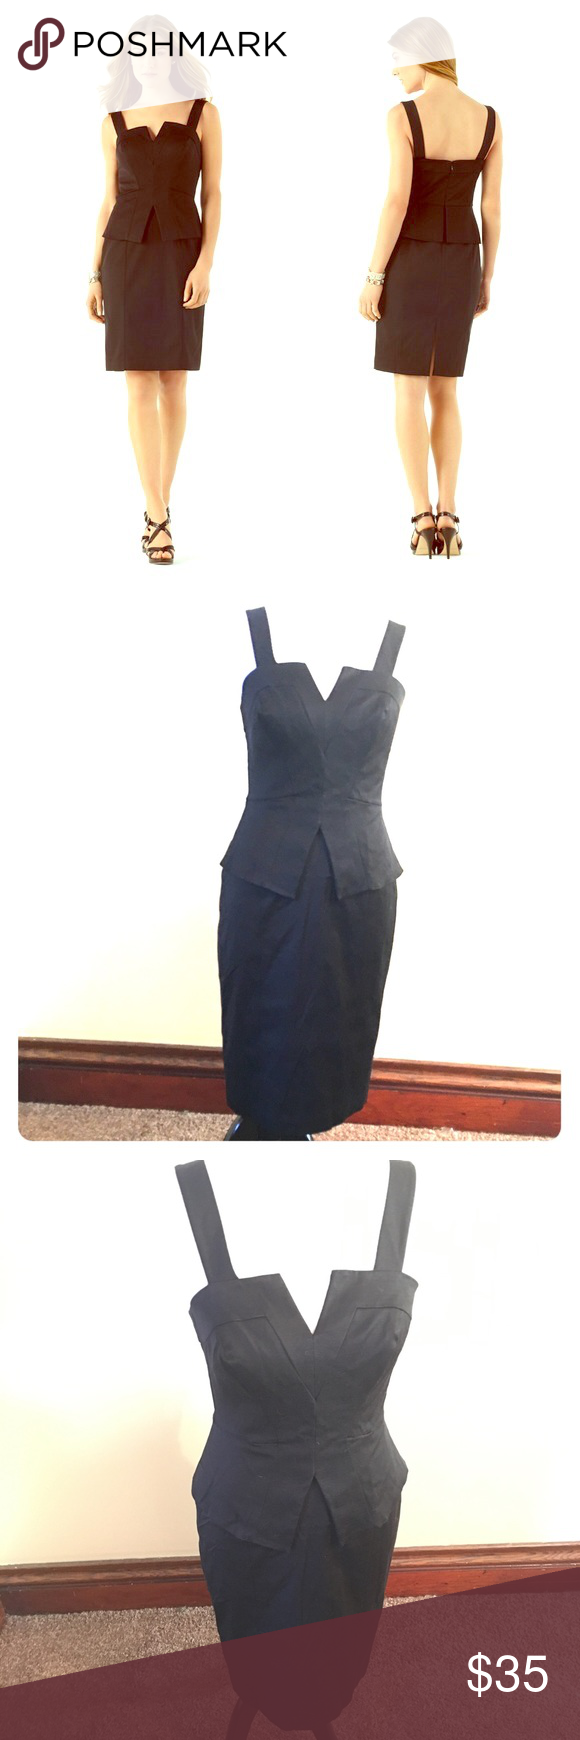 """WHBM FAILLE PEPLUM SHEATH DRESS Excellent condition!  Black faille adds structure to the architectural lines of this sleek dress with a notched neckline and satin-lined, cut-away peplum. Shell: 65% Rayon, 33% Cotton, 2% Spandex. Dry clean. Imported. * Hourglass silhouette. * Princess-seamed bodice and pencil skirt. Seamed waist with flared peplum. Hidden back zip with hook-and-eye closure. 7"""" back vent.  * Two-button adjustability for straps. Reverse charmeuse lining (silky side to skin)…"""